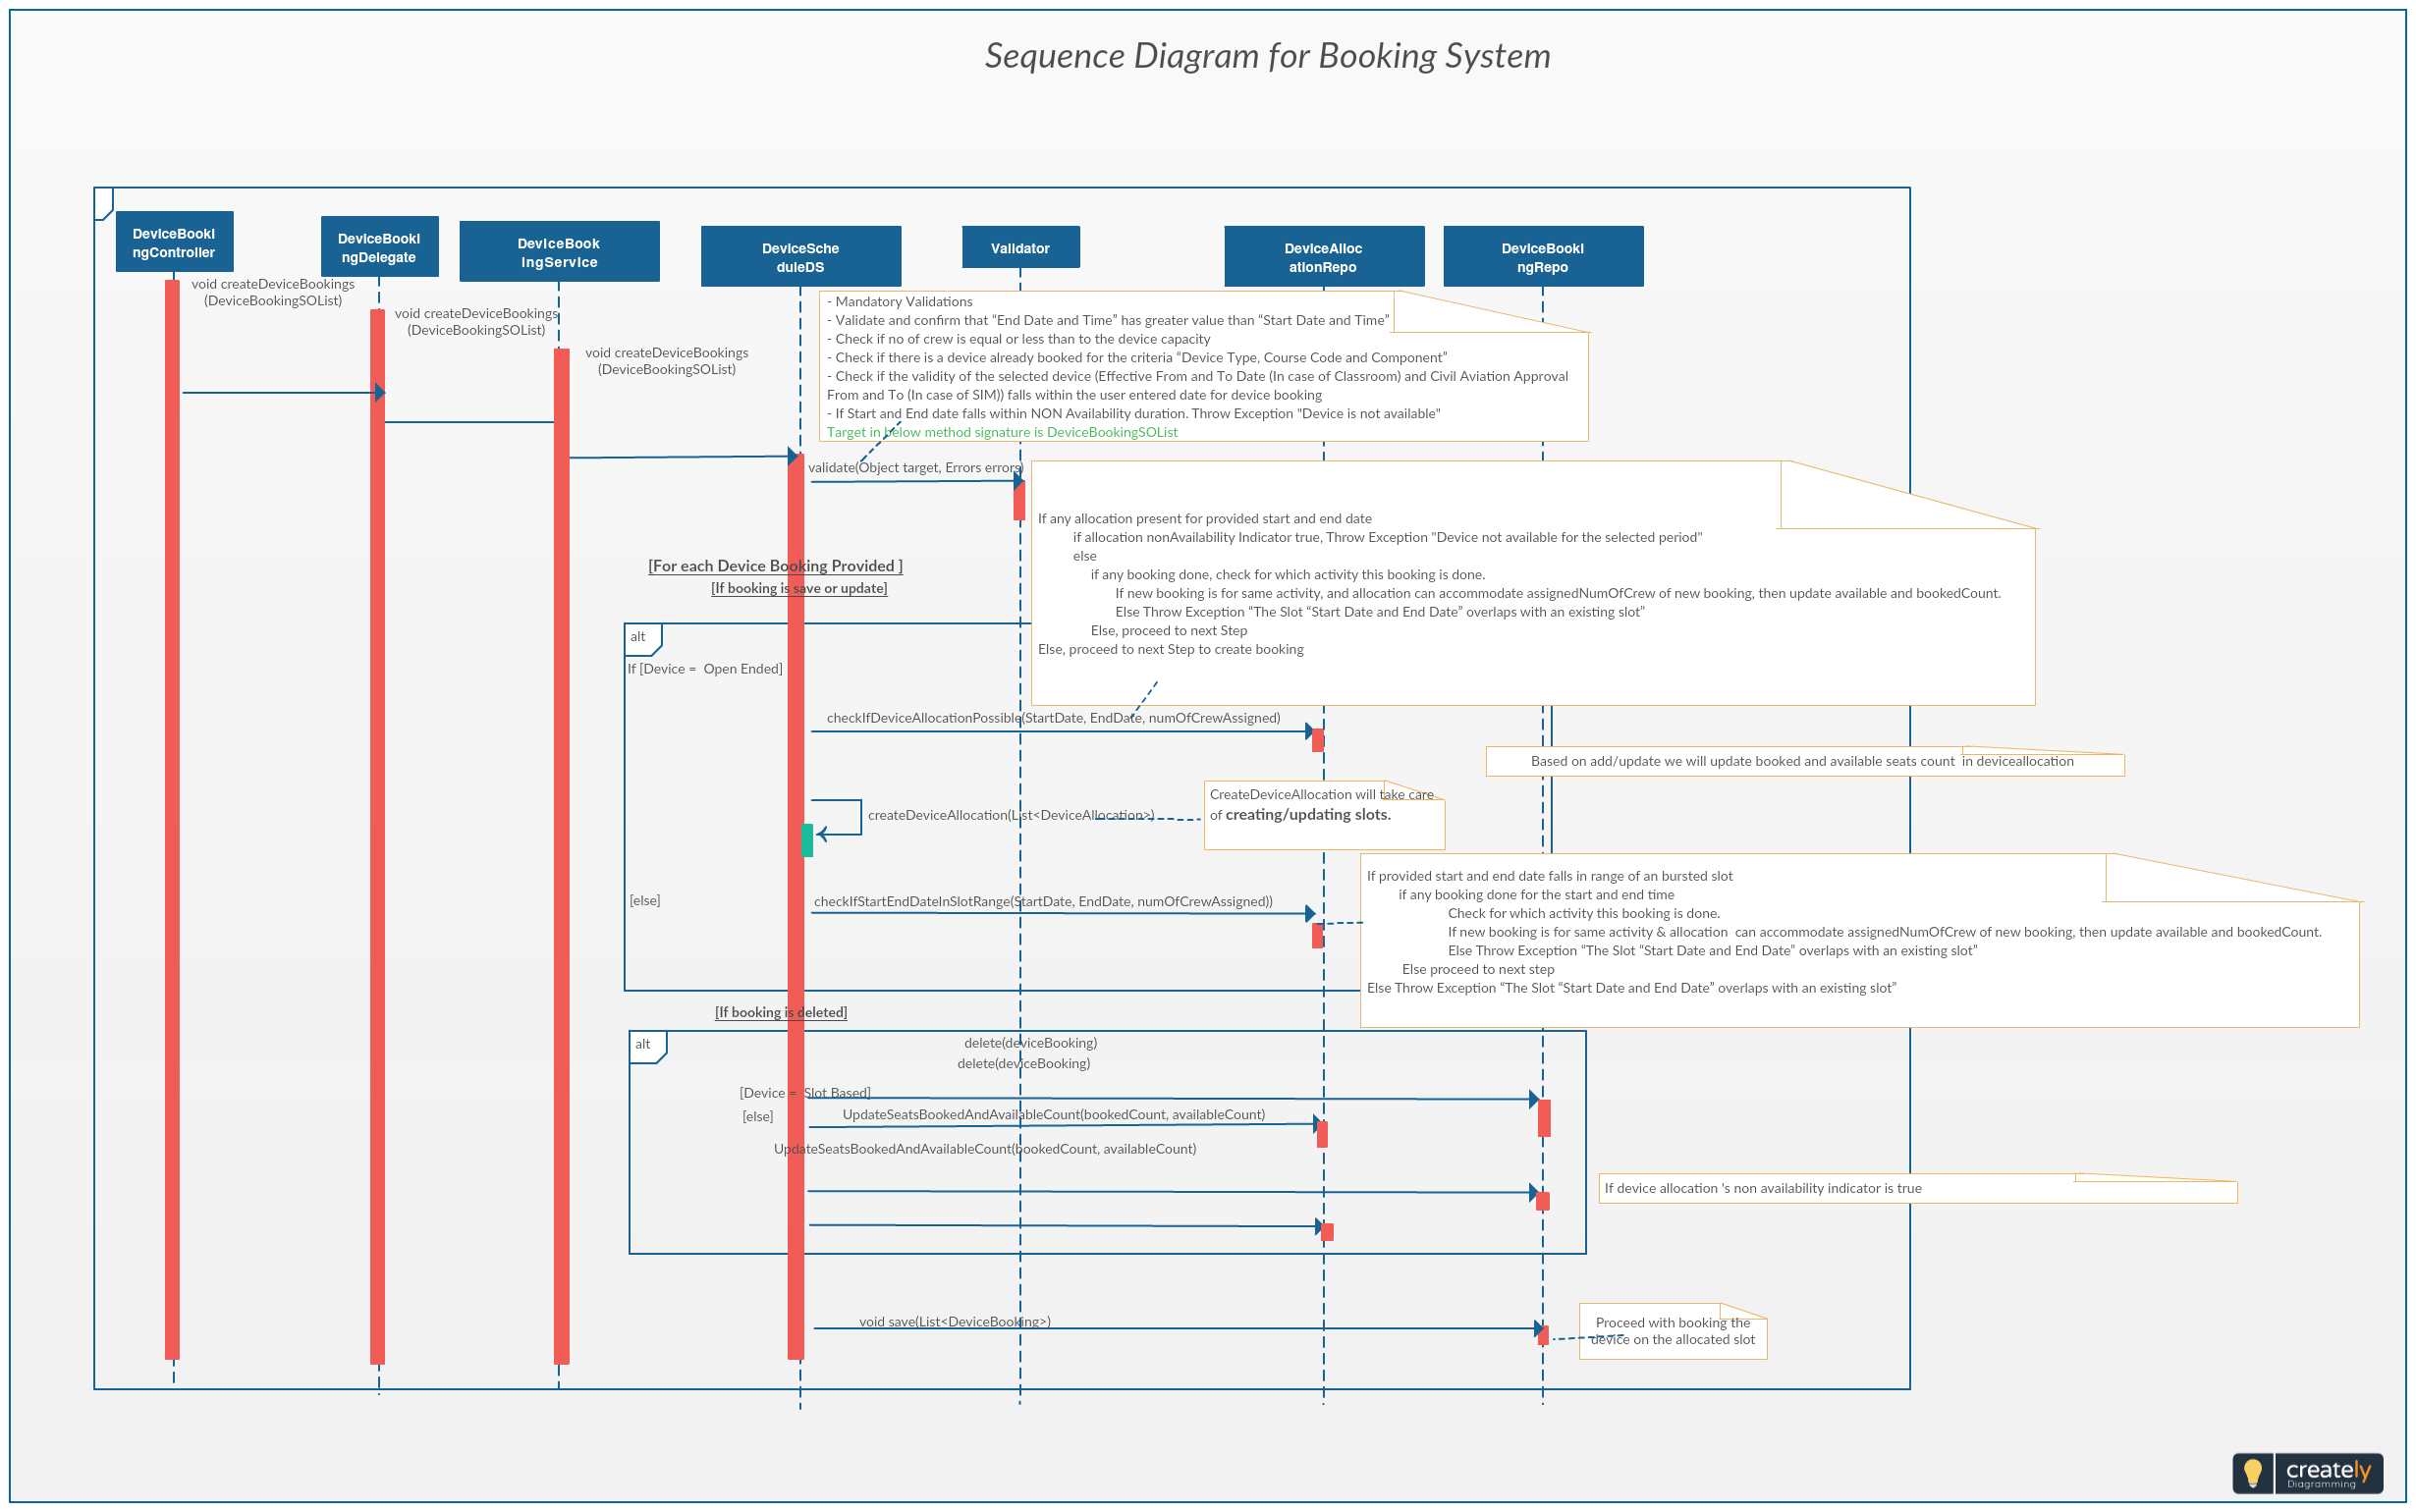 booking system sequence diagram the diagrams show an example of objects interaction in time sequence in a booking system it depicts the objects and  [ 2460 x 1540 Pixel ]